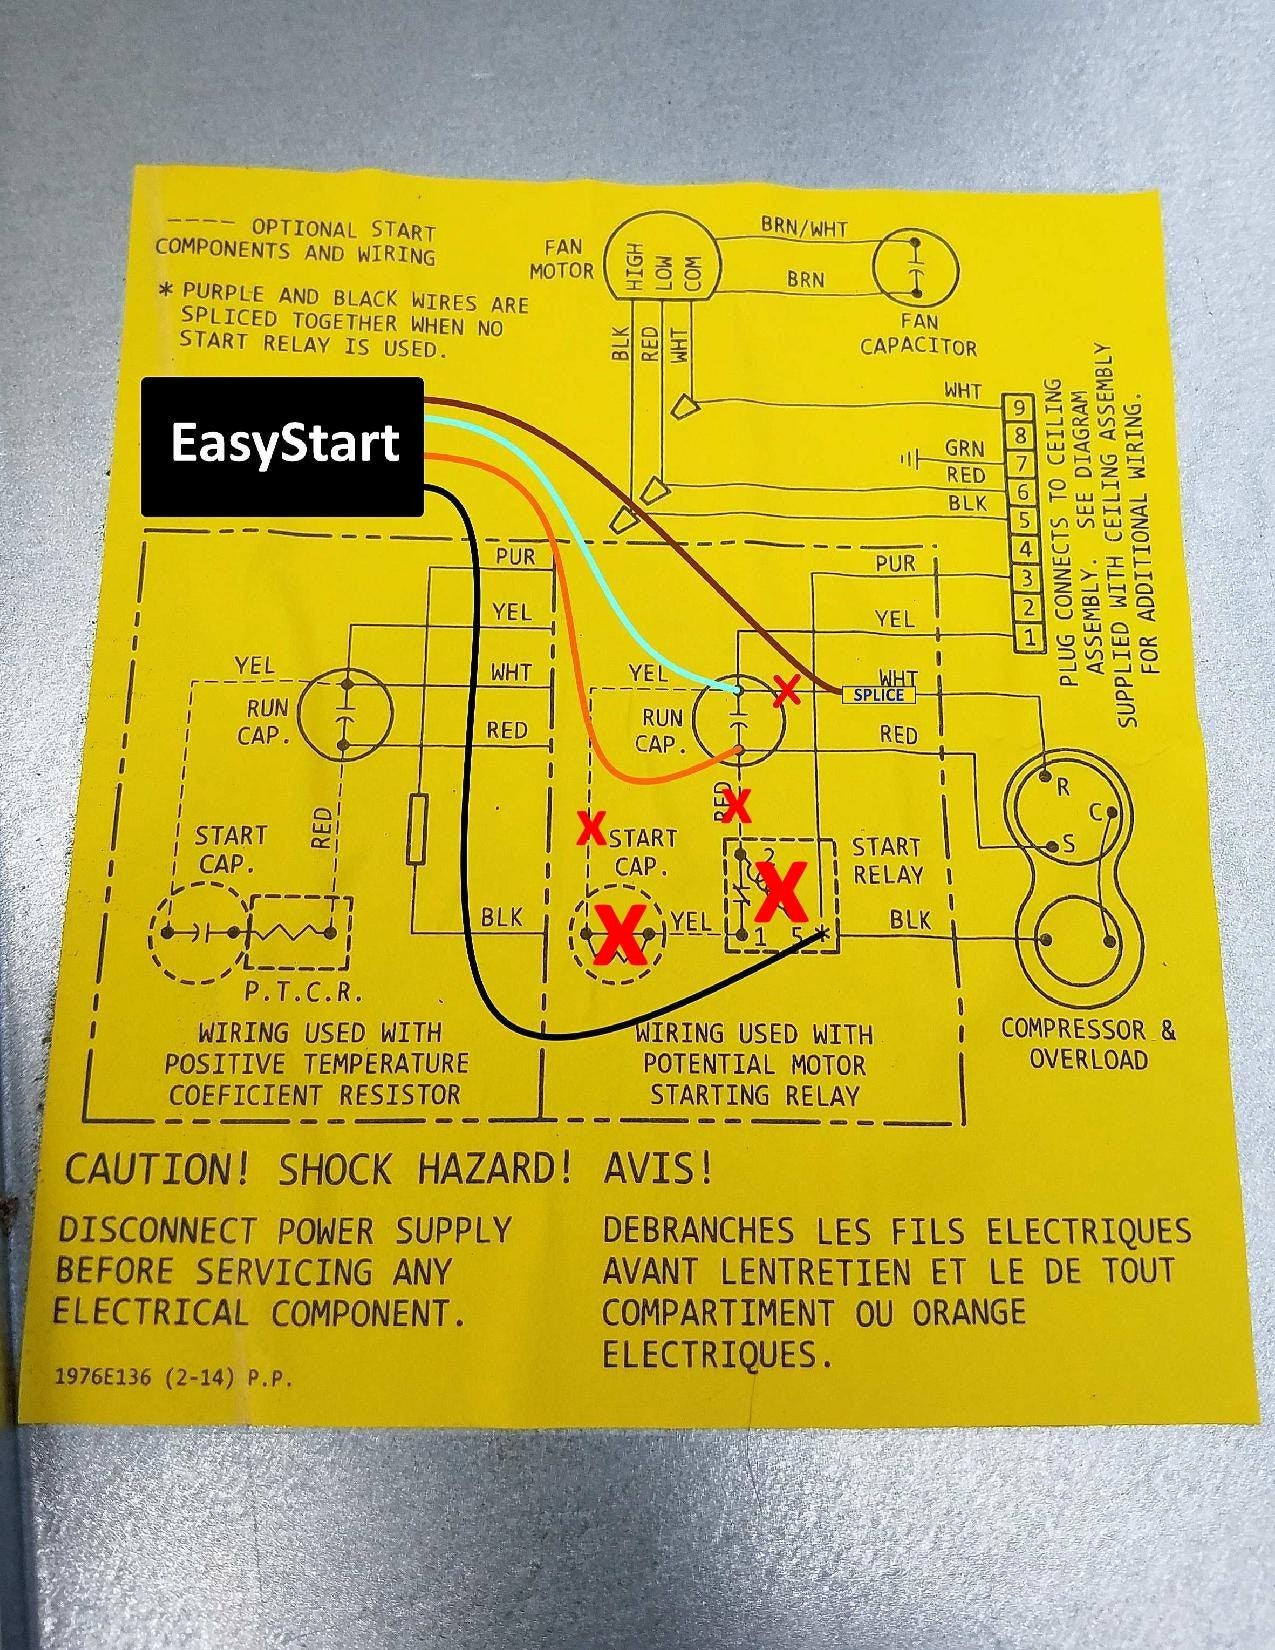 rv easystart soft starter wiring diagrams resource page micro air rh microair net coleman mach ar7815 wiring diagram coleman mach ac wiring diagram